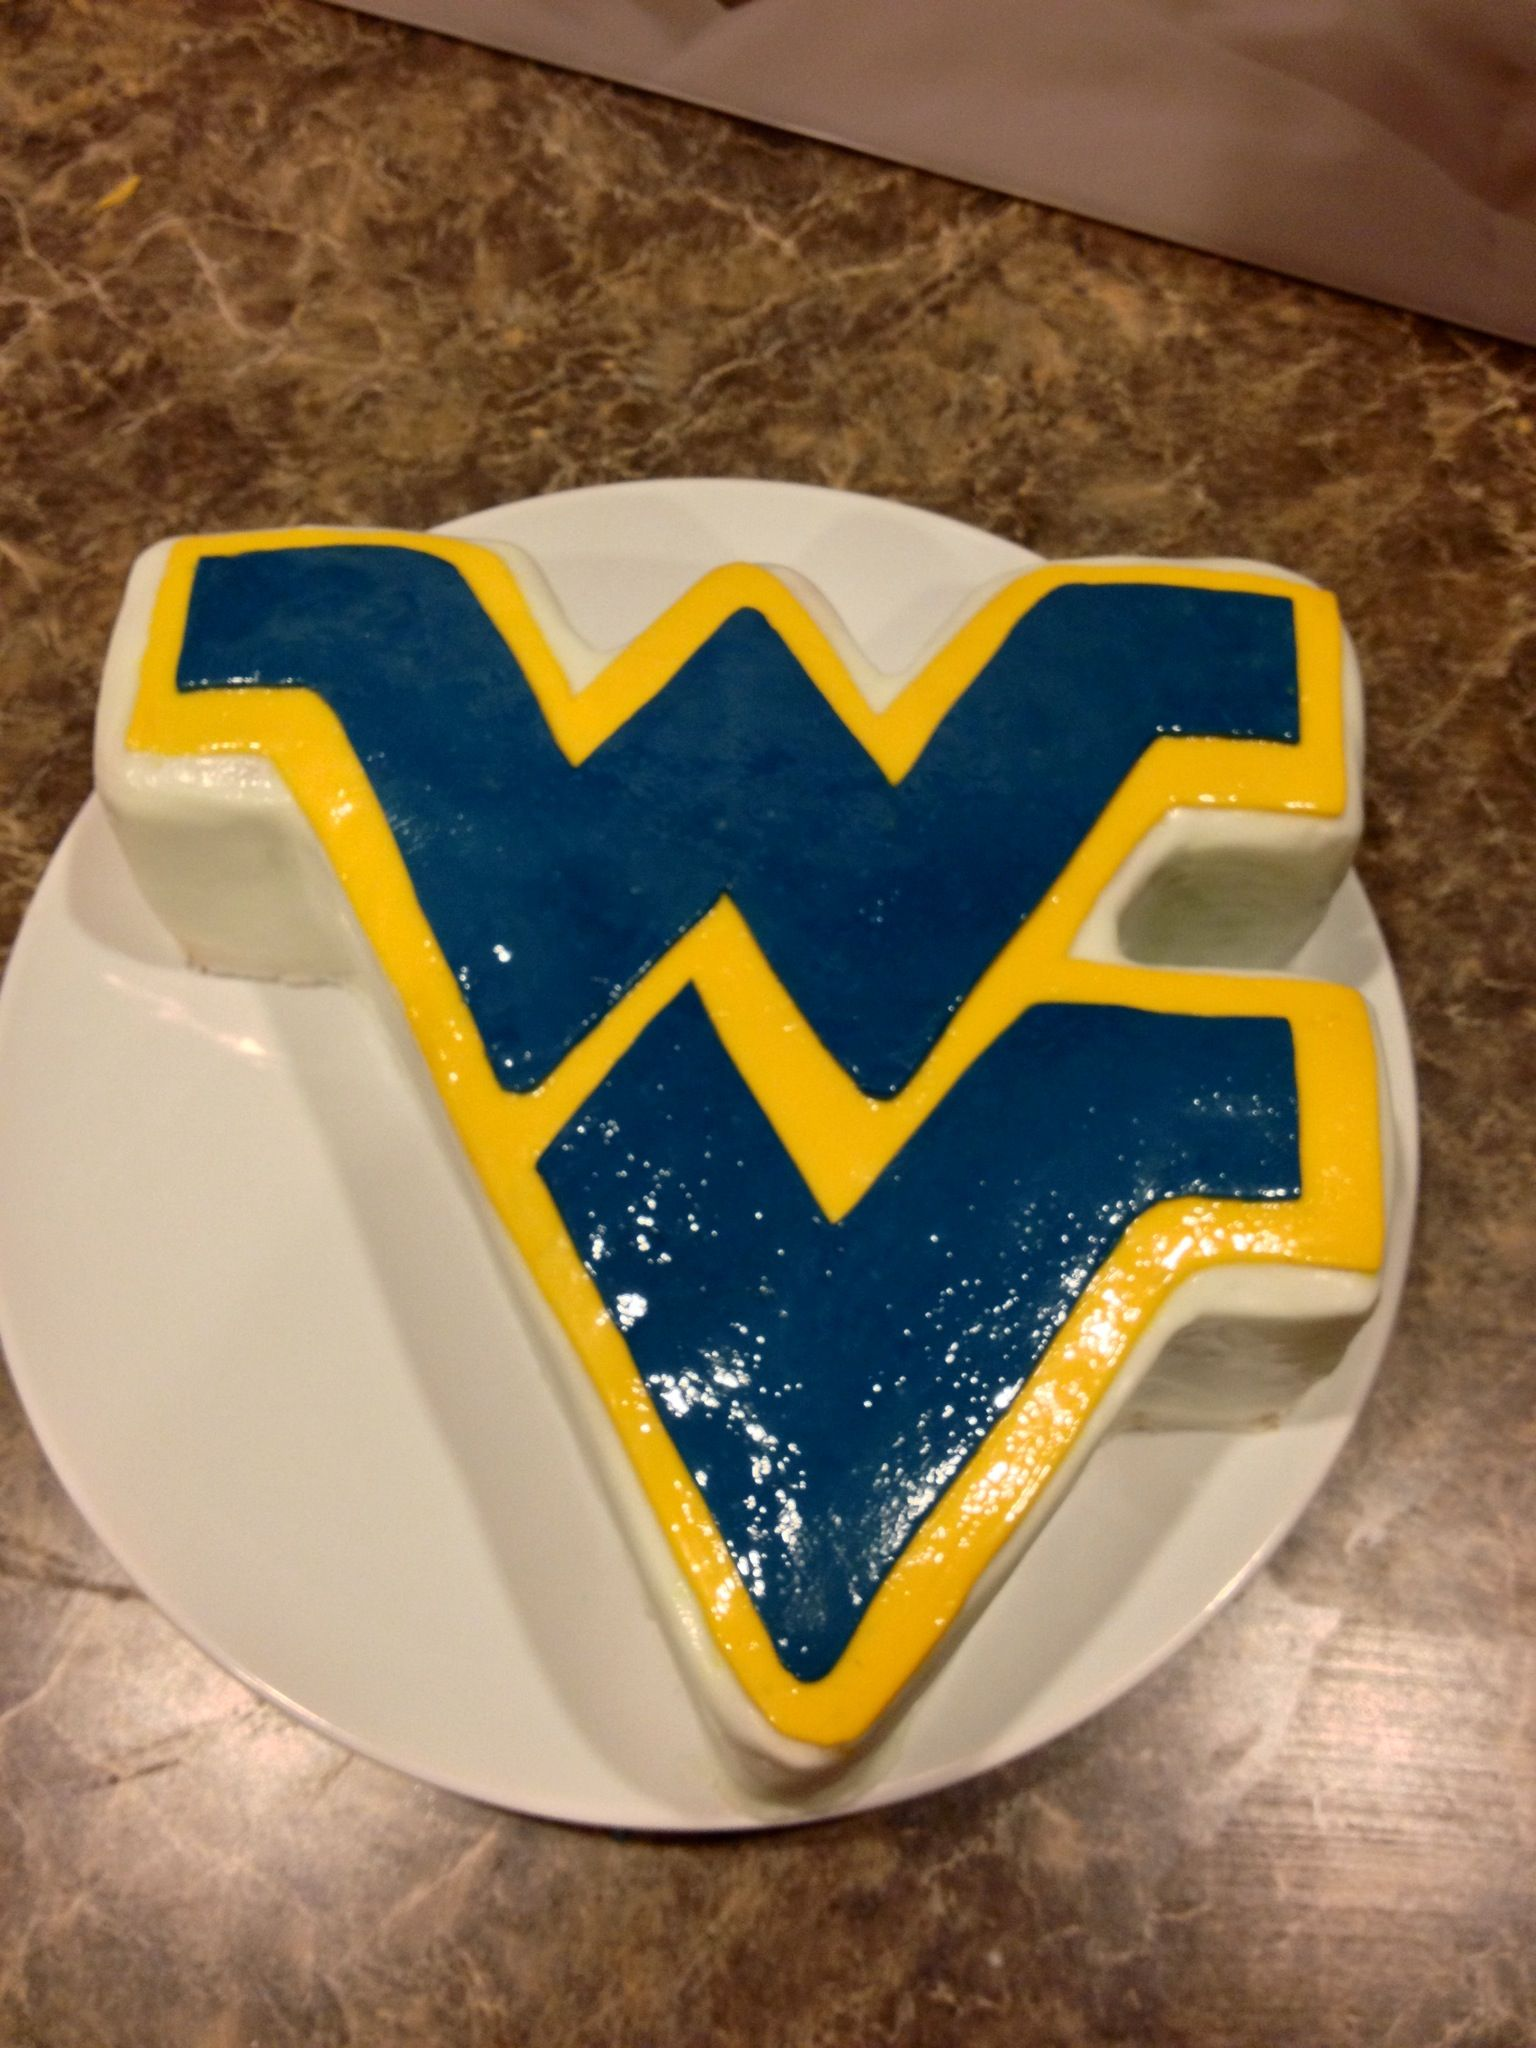 Wvu West Virginia Vanilla Cake With Buttercream And